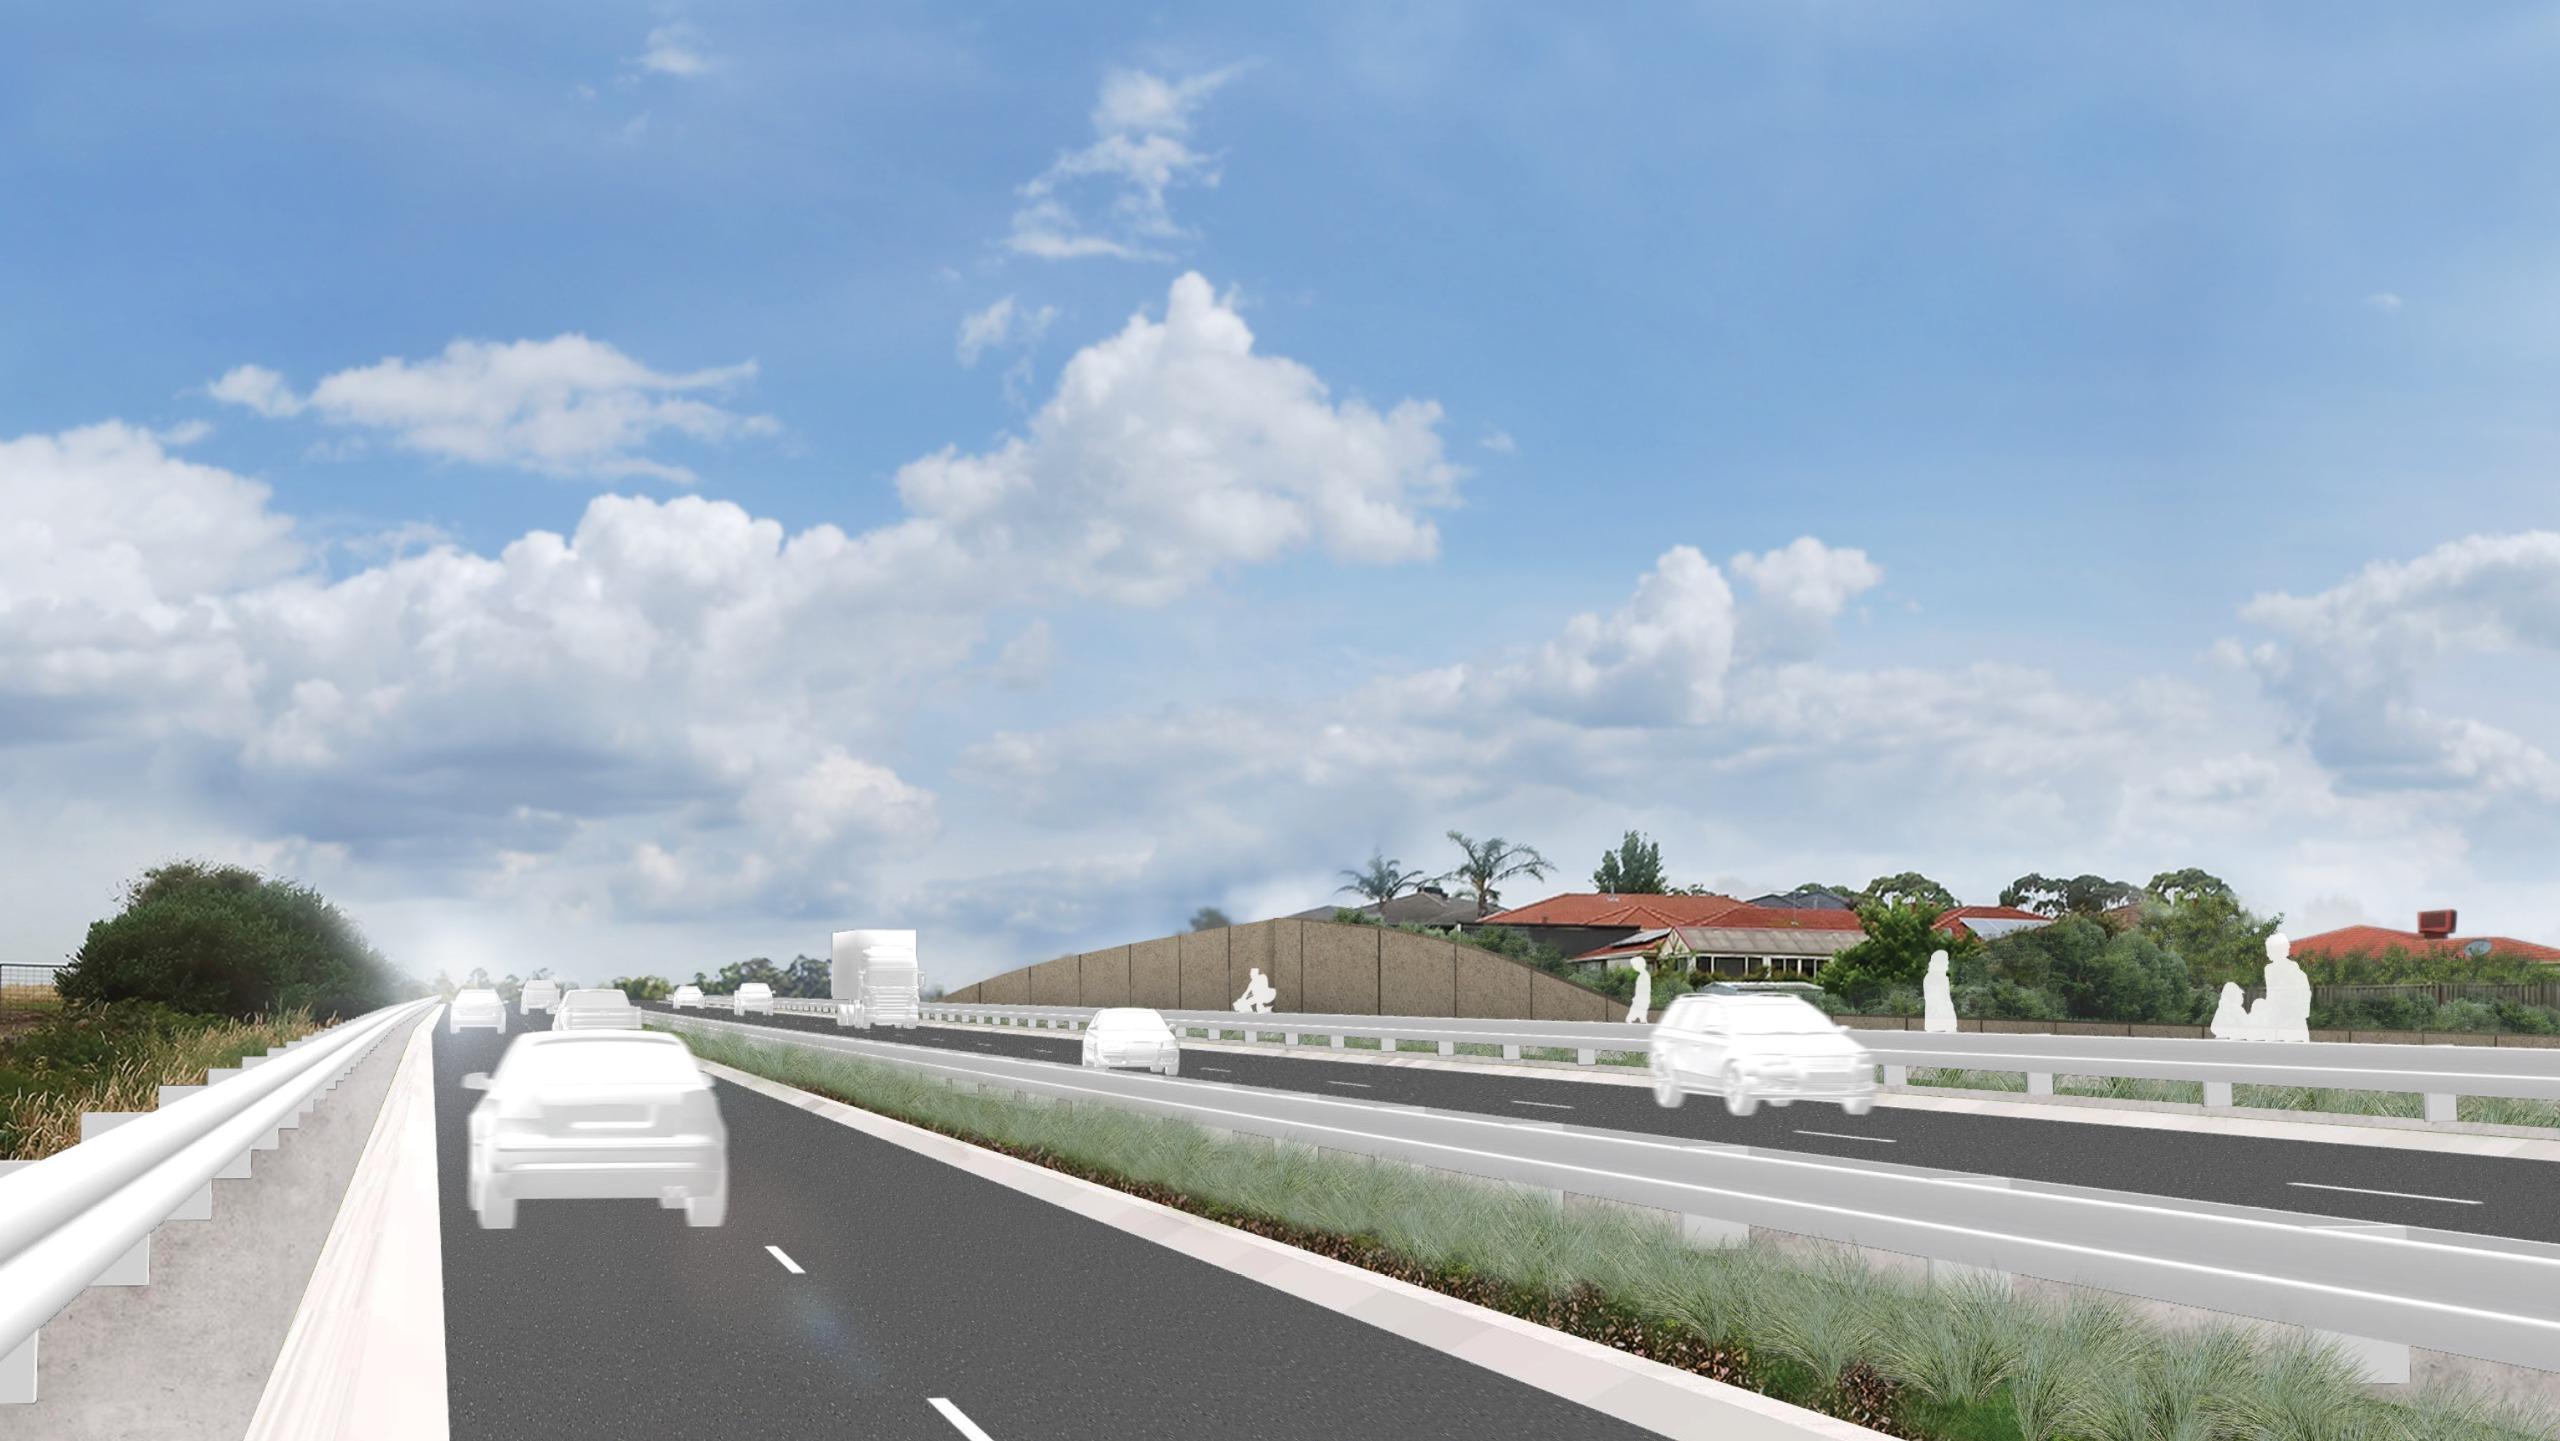 Artist's impression of cars driving on Hall Road 15 years after project completion